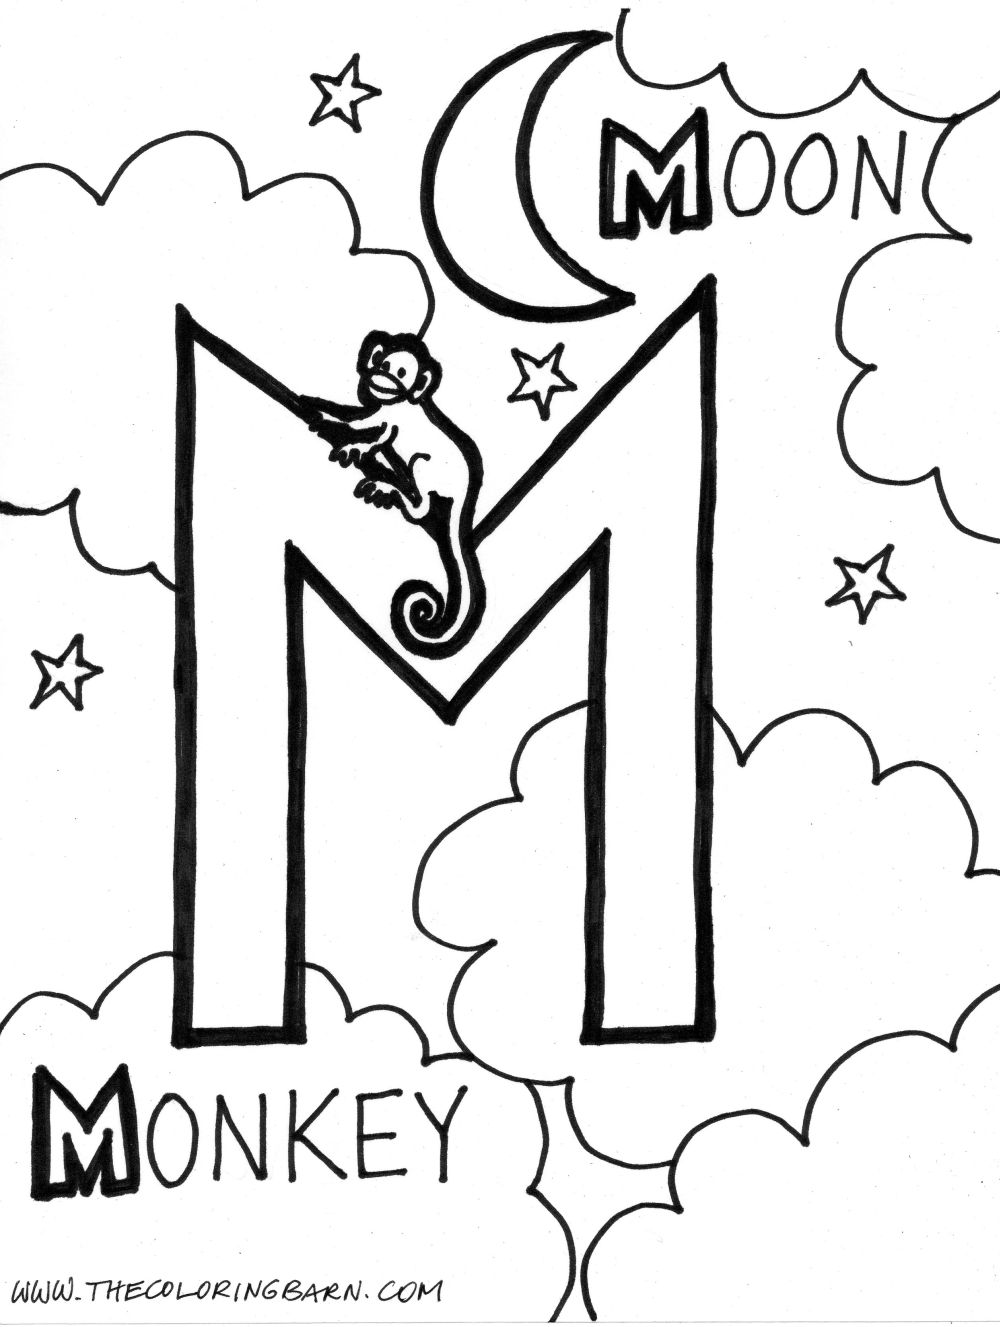 letter m coloring pages for adults letter m coloring pages coloring home adults letter for coloring m pages